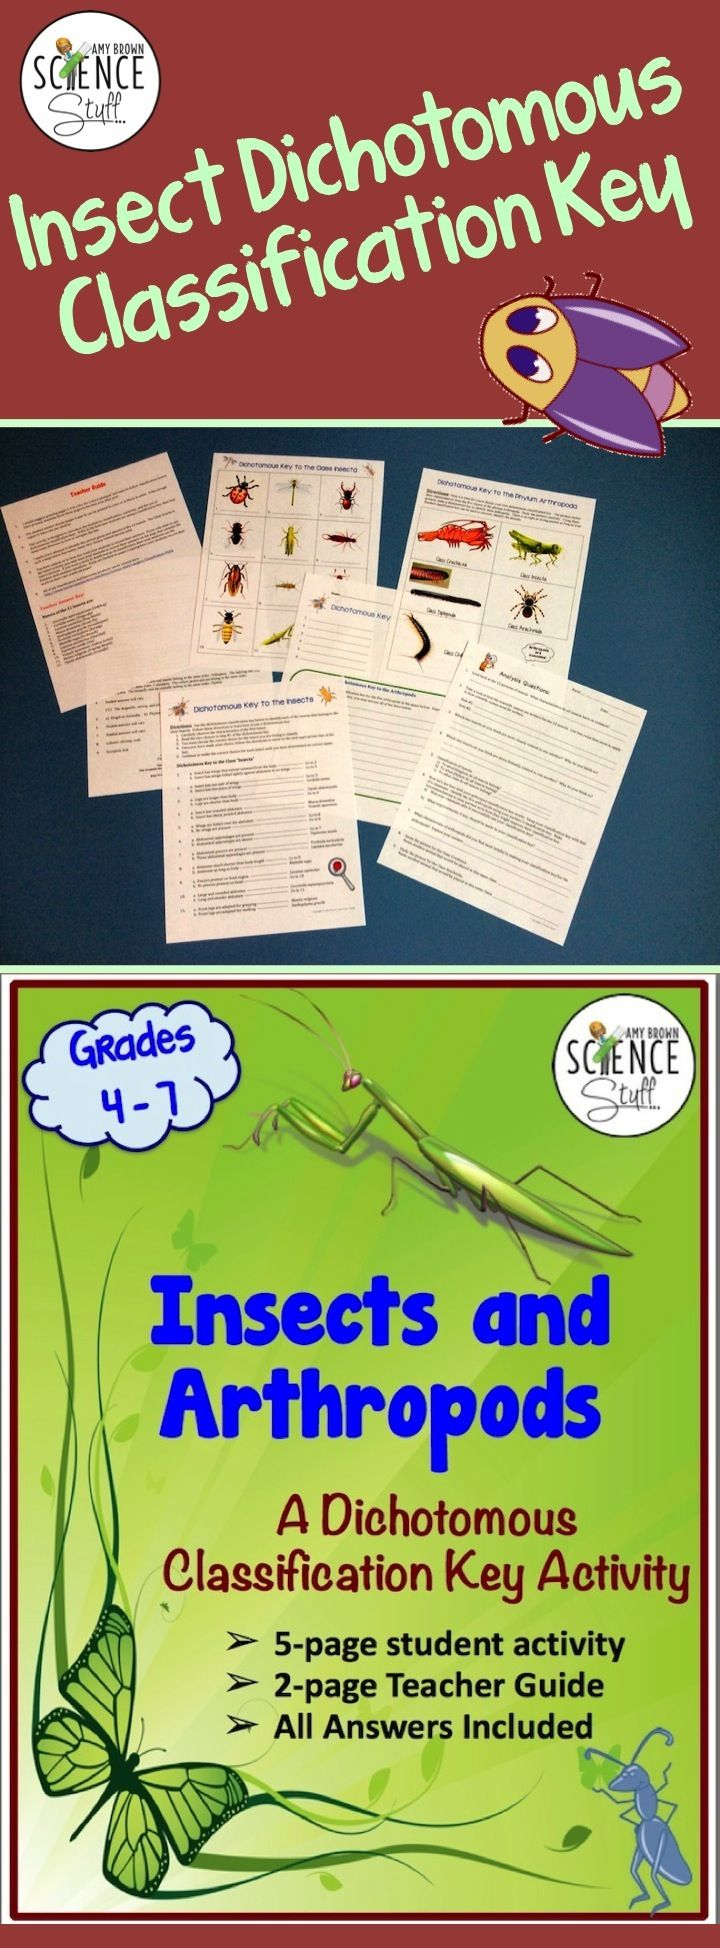 Fun dichotomous classification key activity on insects and arthropods.